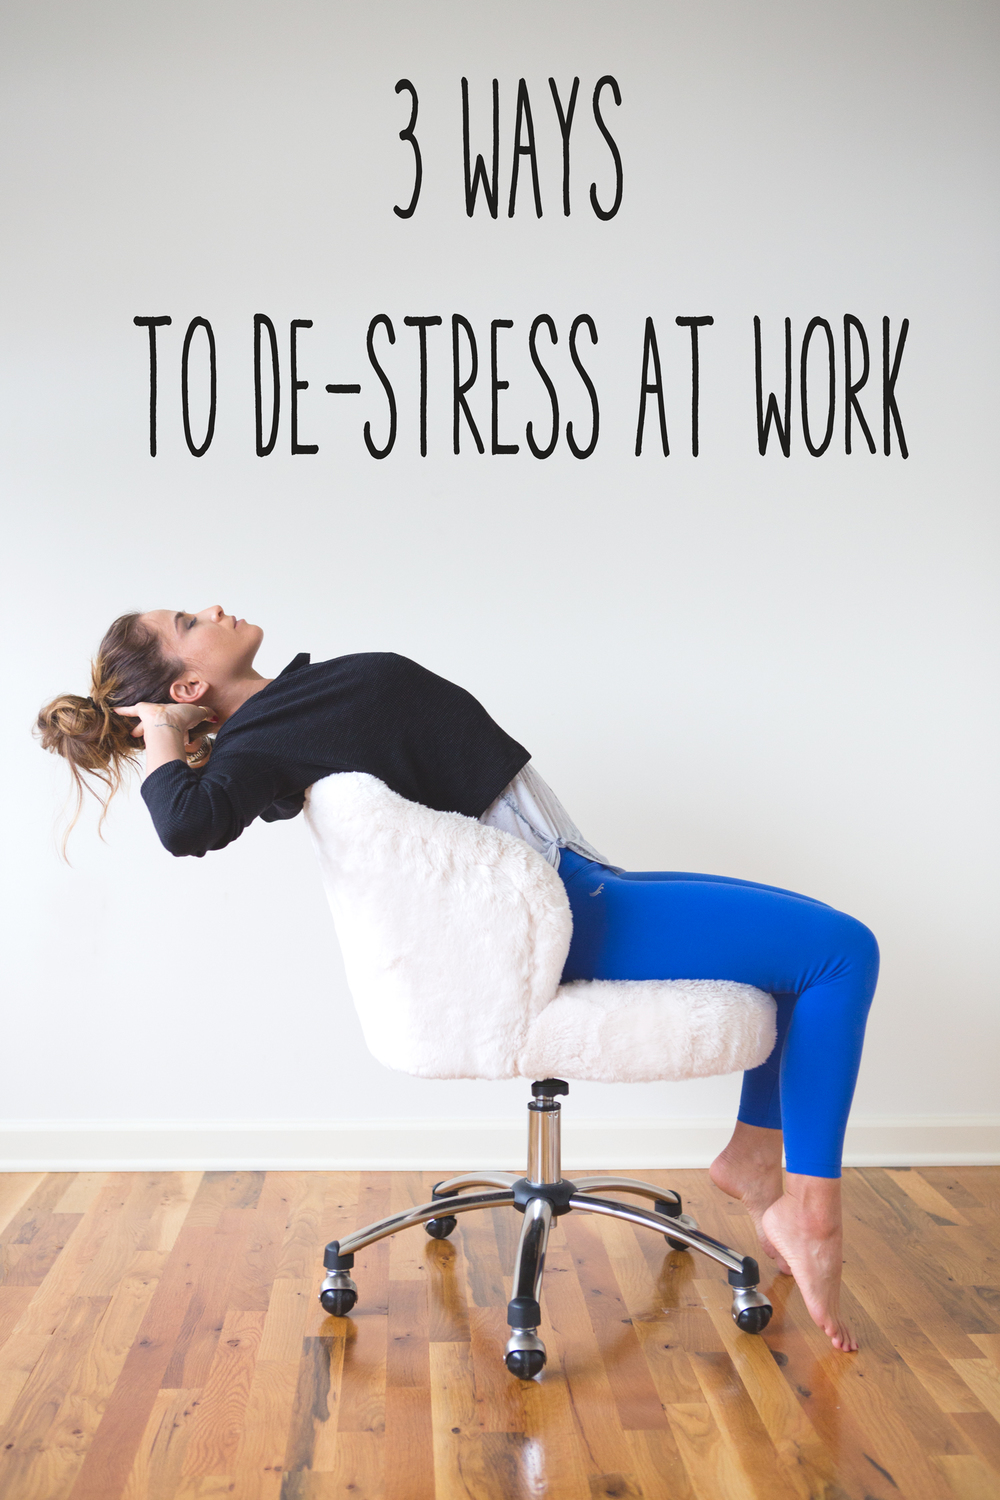 Pin now and read later - de-stressing ideas for work